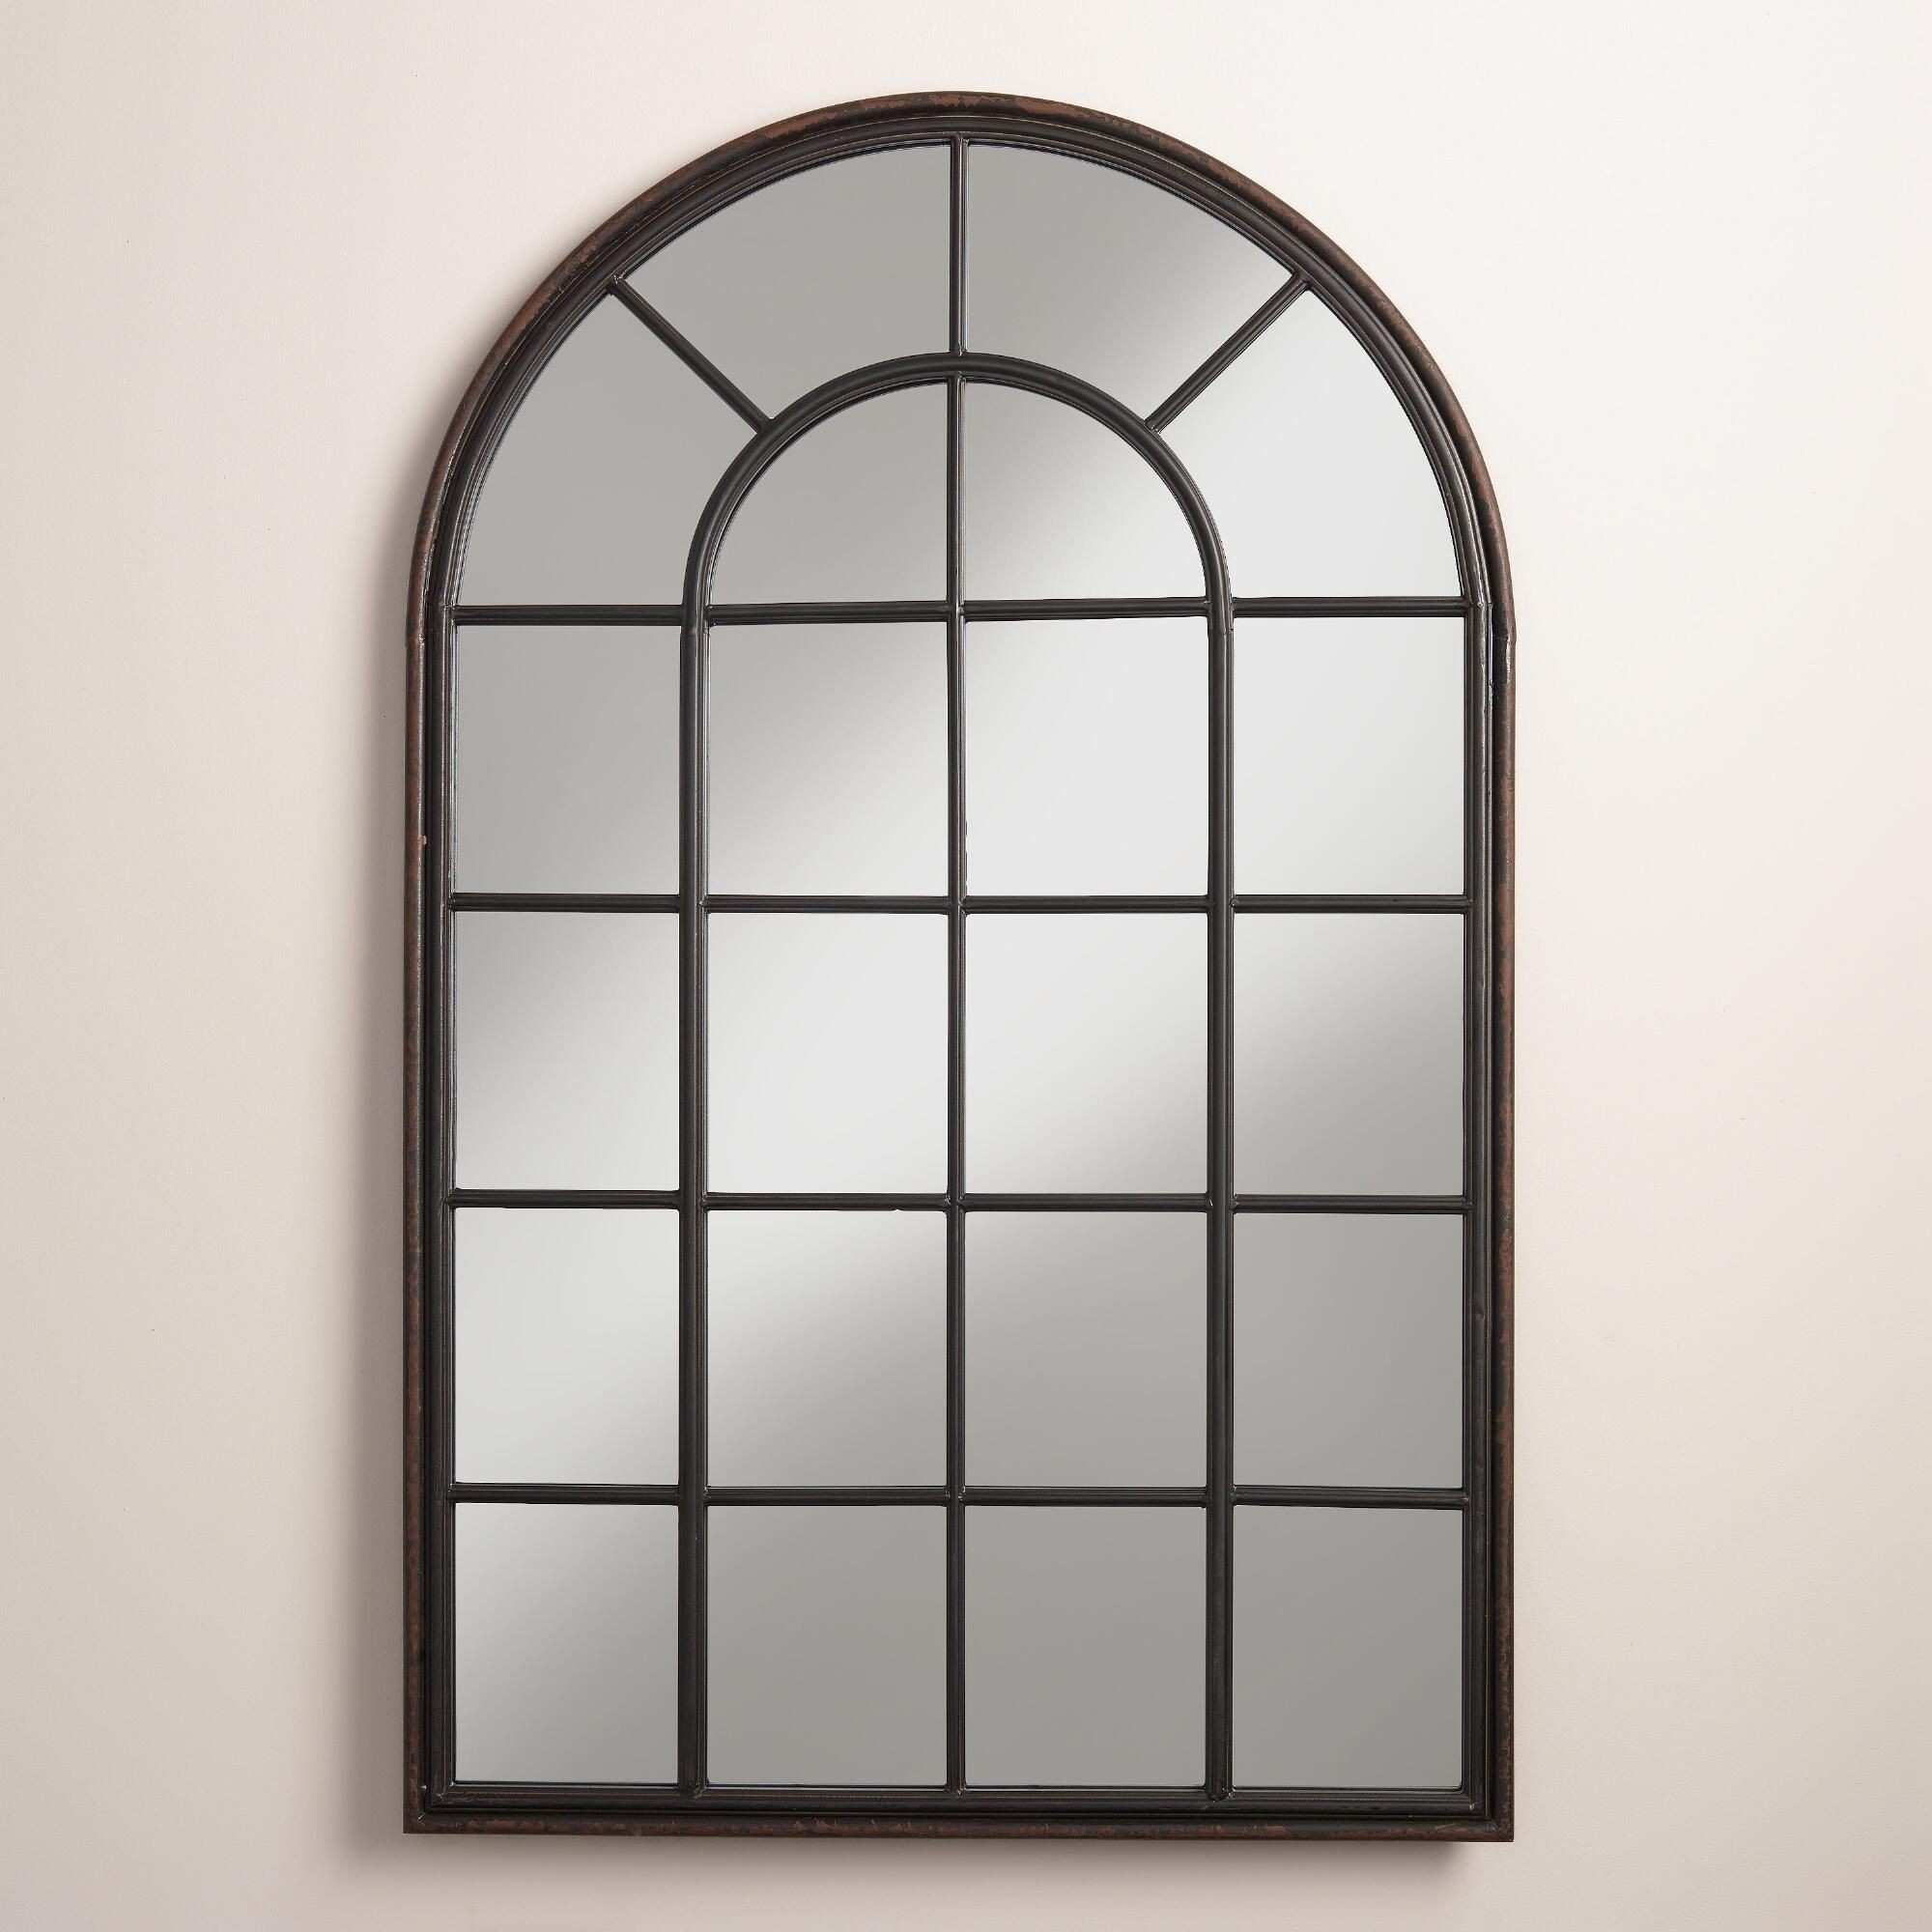 Our window inspired iron mirror features a broad arch and an aged